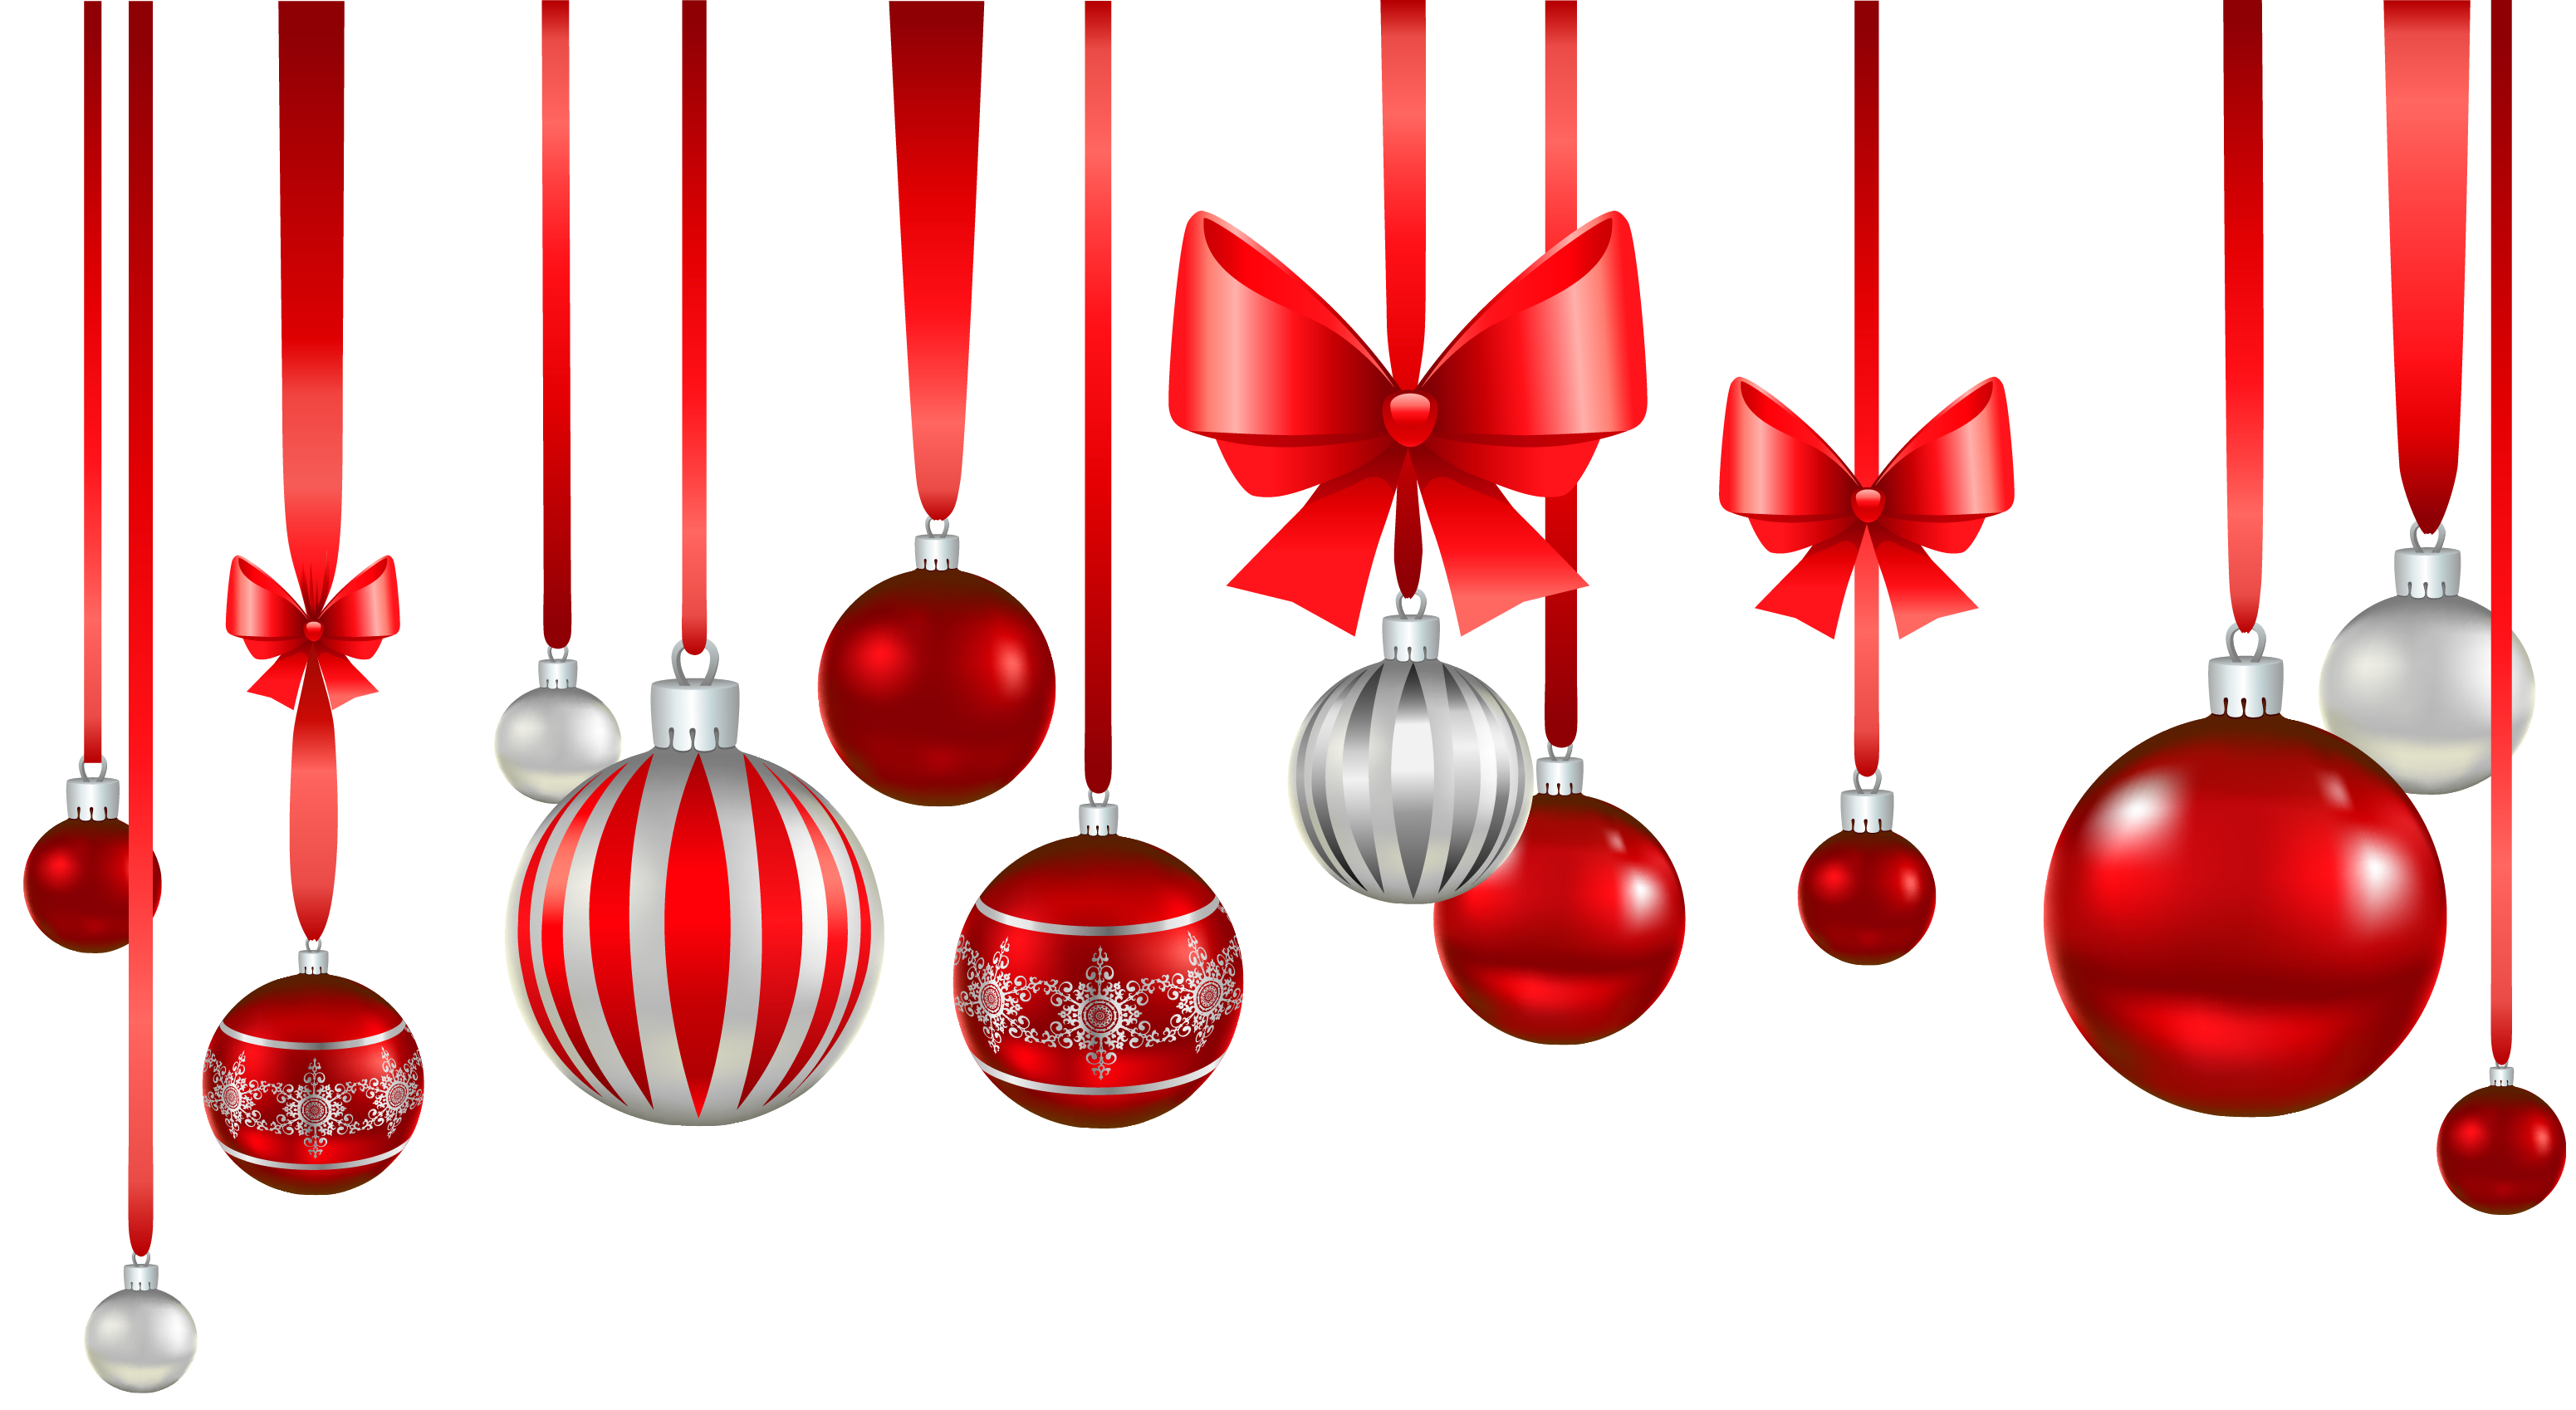 download christmas ornament png images transparent gallery advertisement christmas ornament png - Buy Cheap Christmas Decorations Online